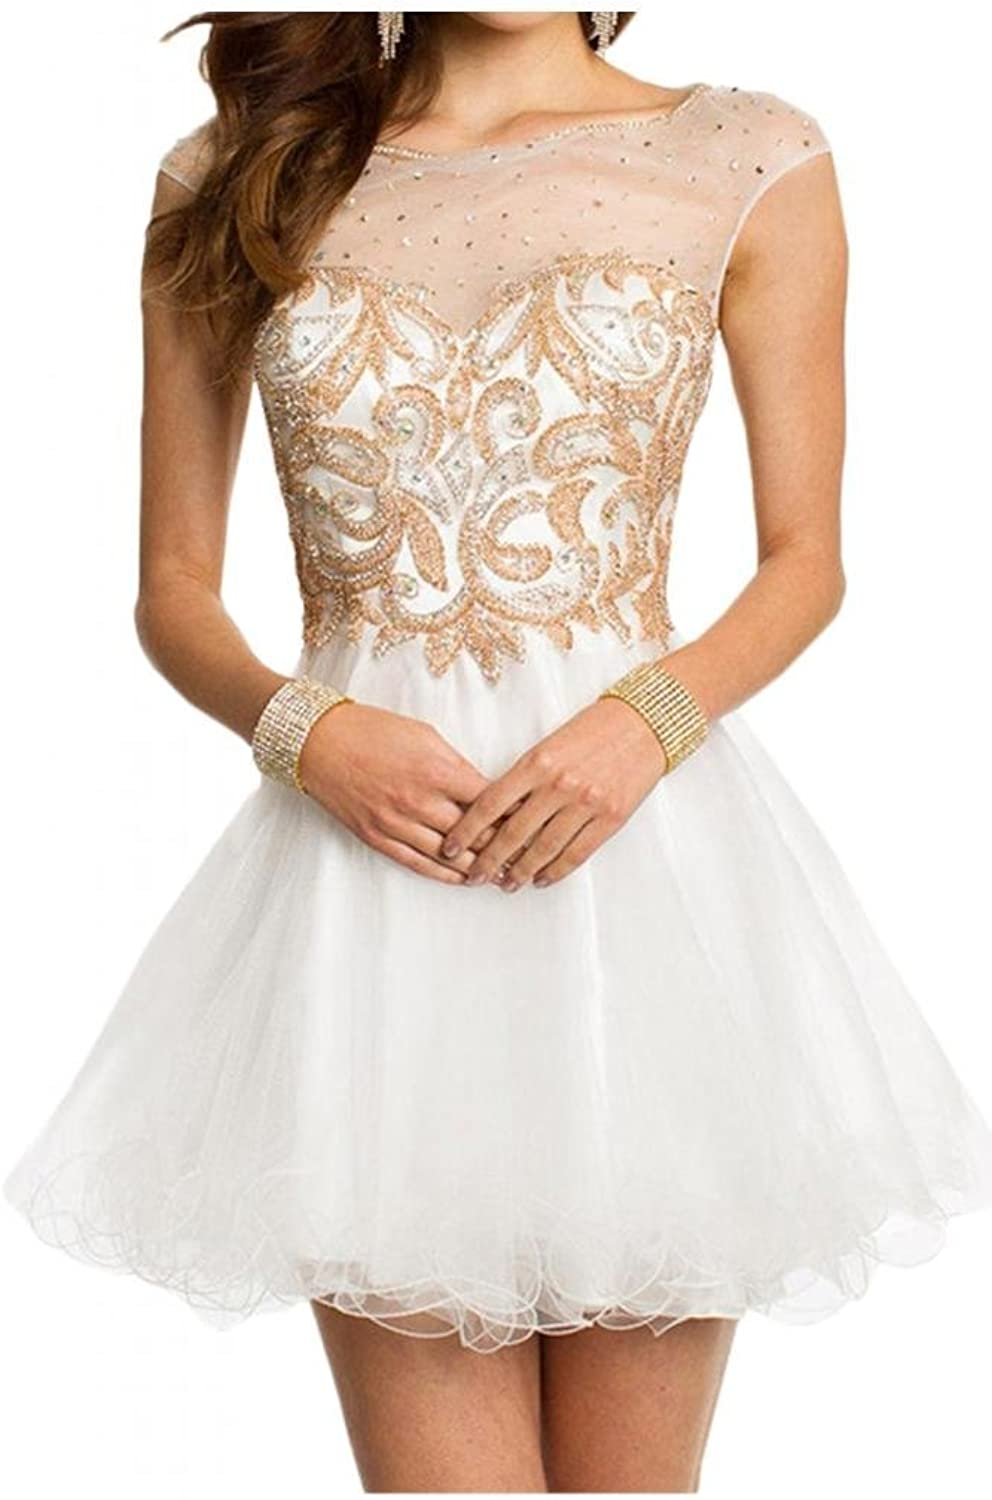 Angel Bride 2015 Hot Sale Short Tulle Homecoming Party Dresses with Sleeves Bateau